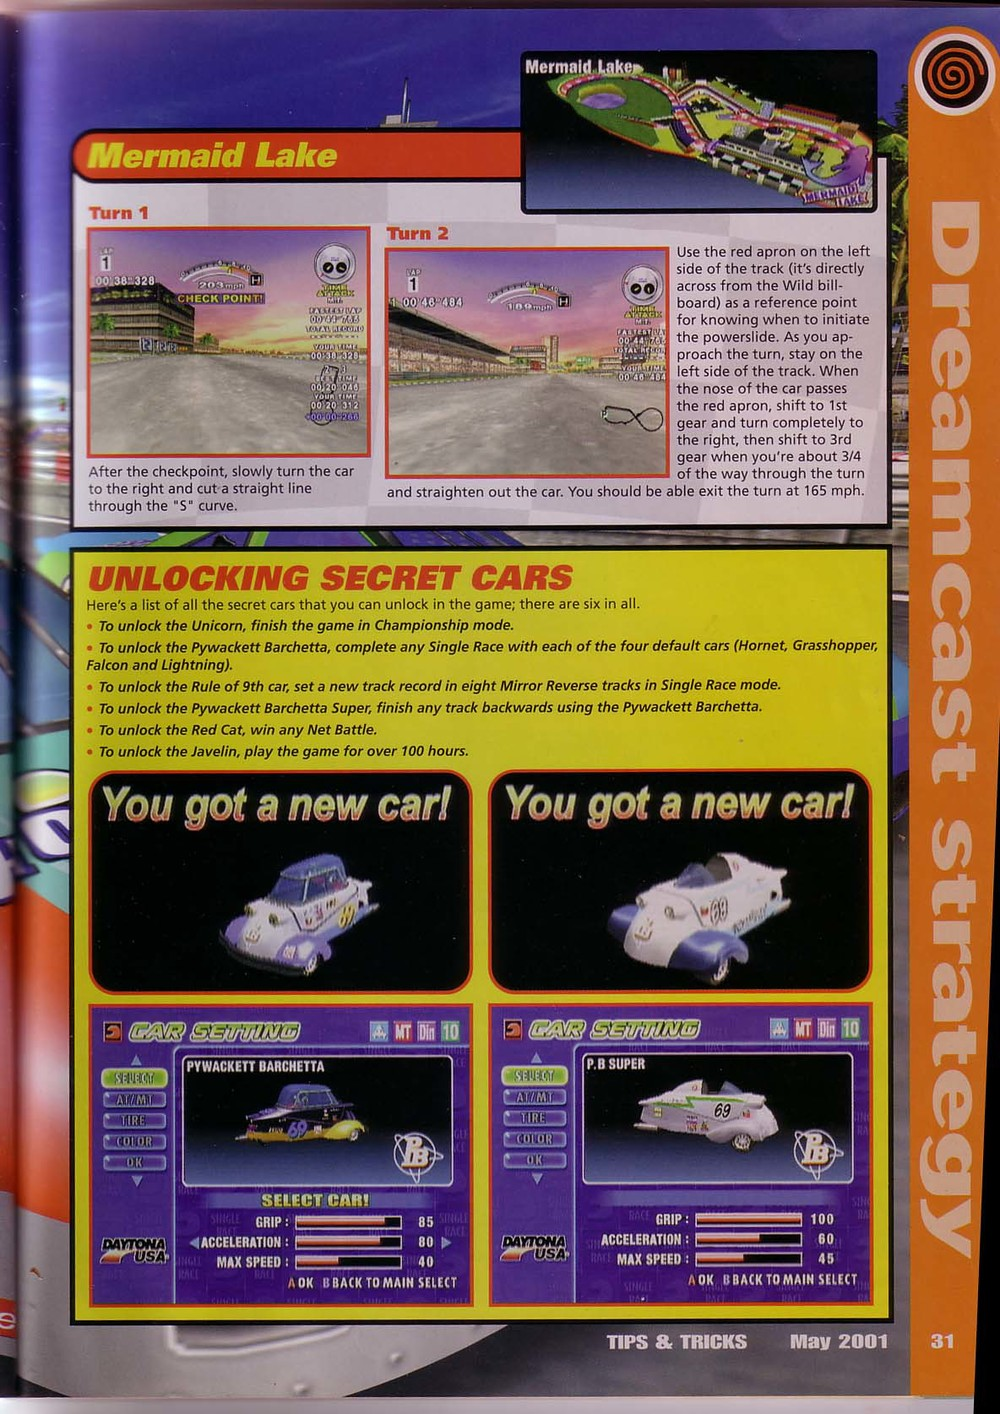 TipsandTricks_May_2001_Daytona_USA_pg6_Strategy.jpg